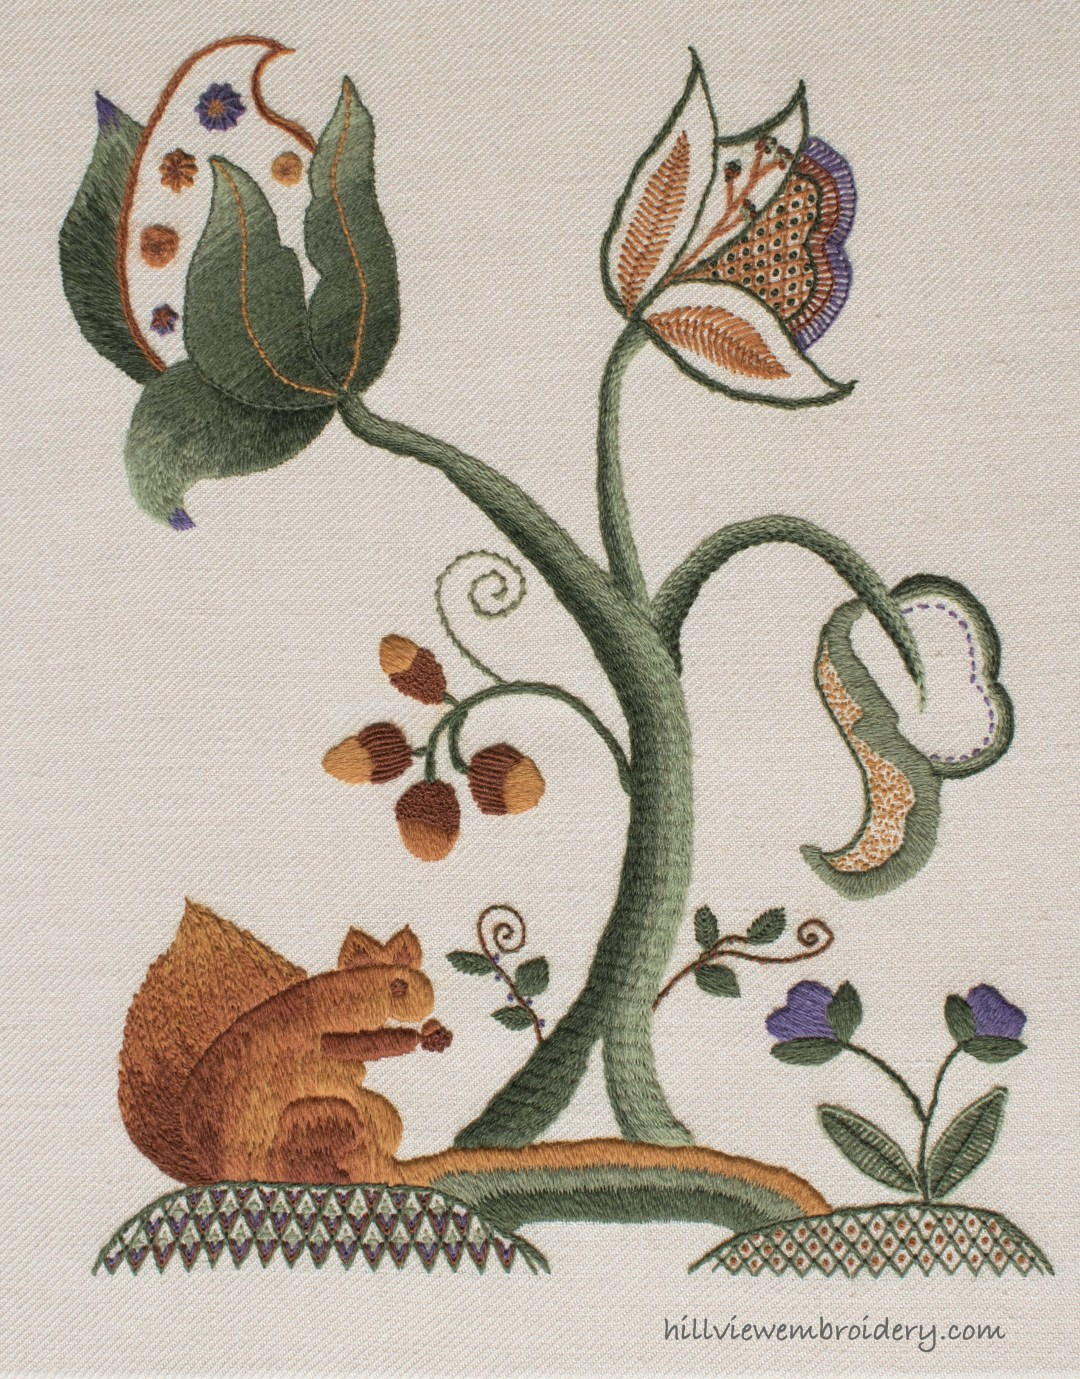 Completed piece of Jacobean Crewelwork for the RSN Certificate